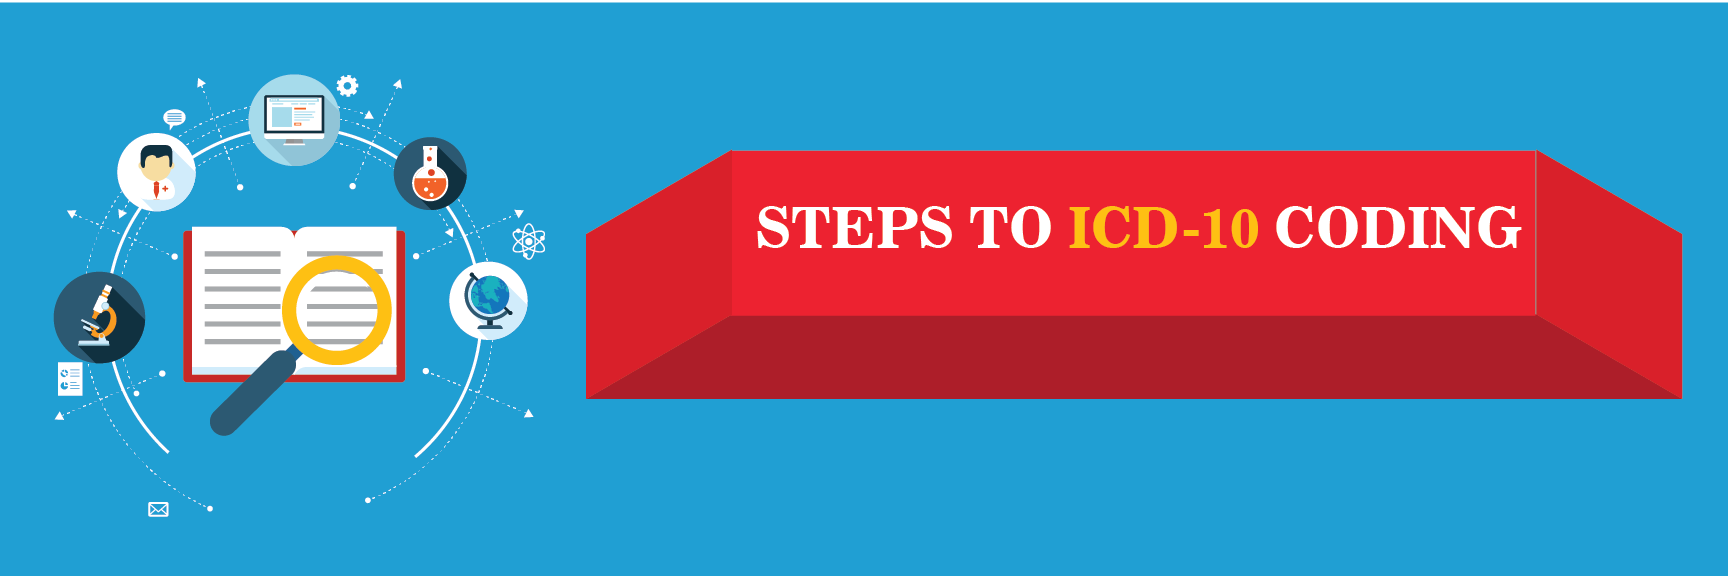 Steps to icd 10 coding infographic vigyanix how to select the right icd 10 code xflitez Image collections